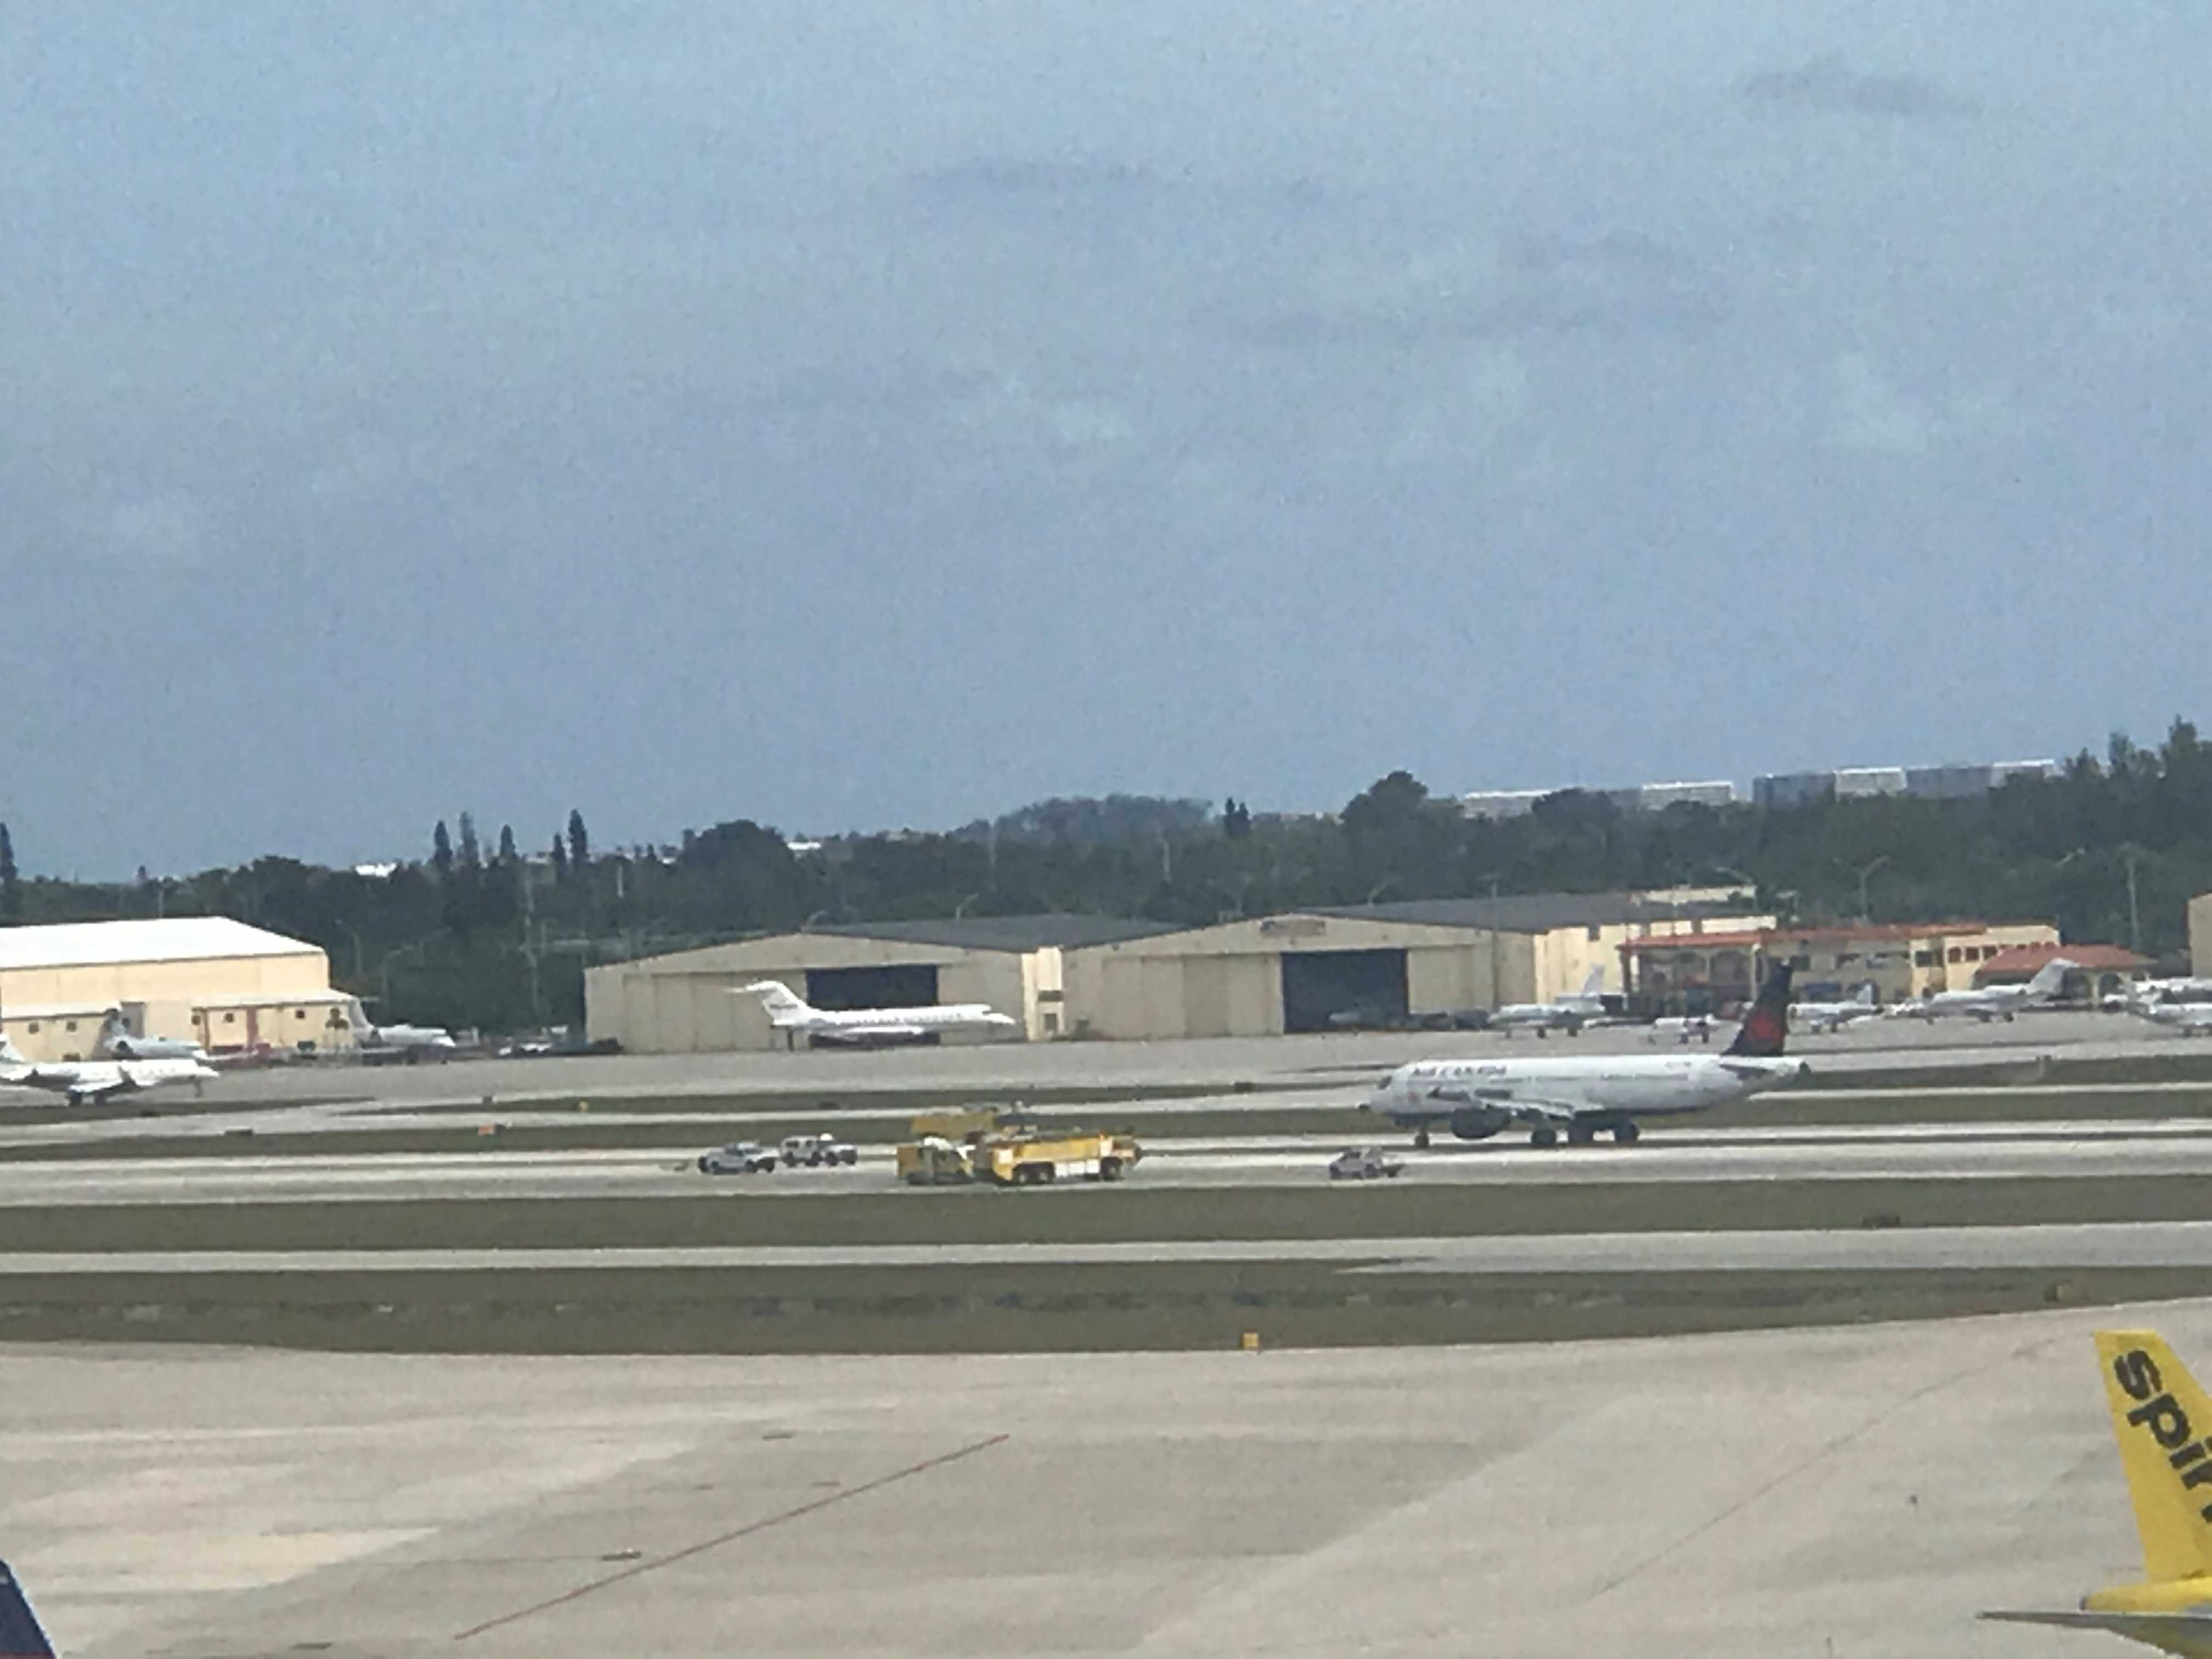 Air Canada plane lands safely at PBIA; passengers still on board